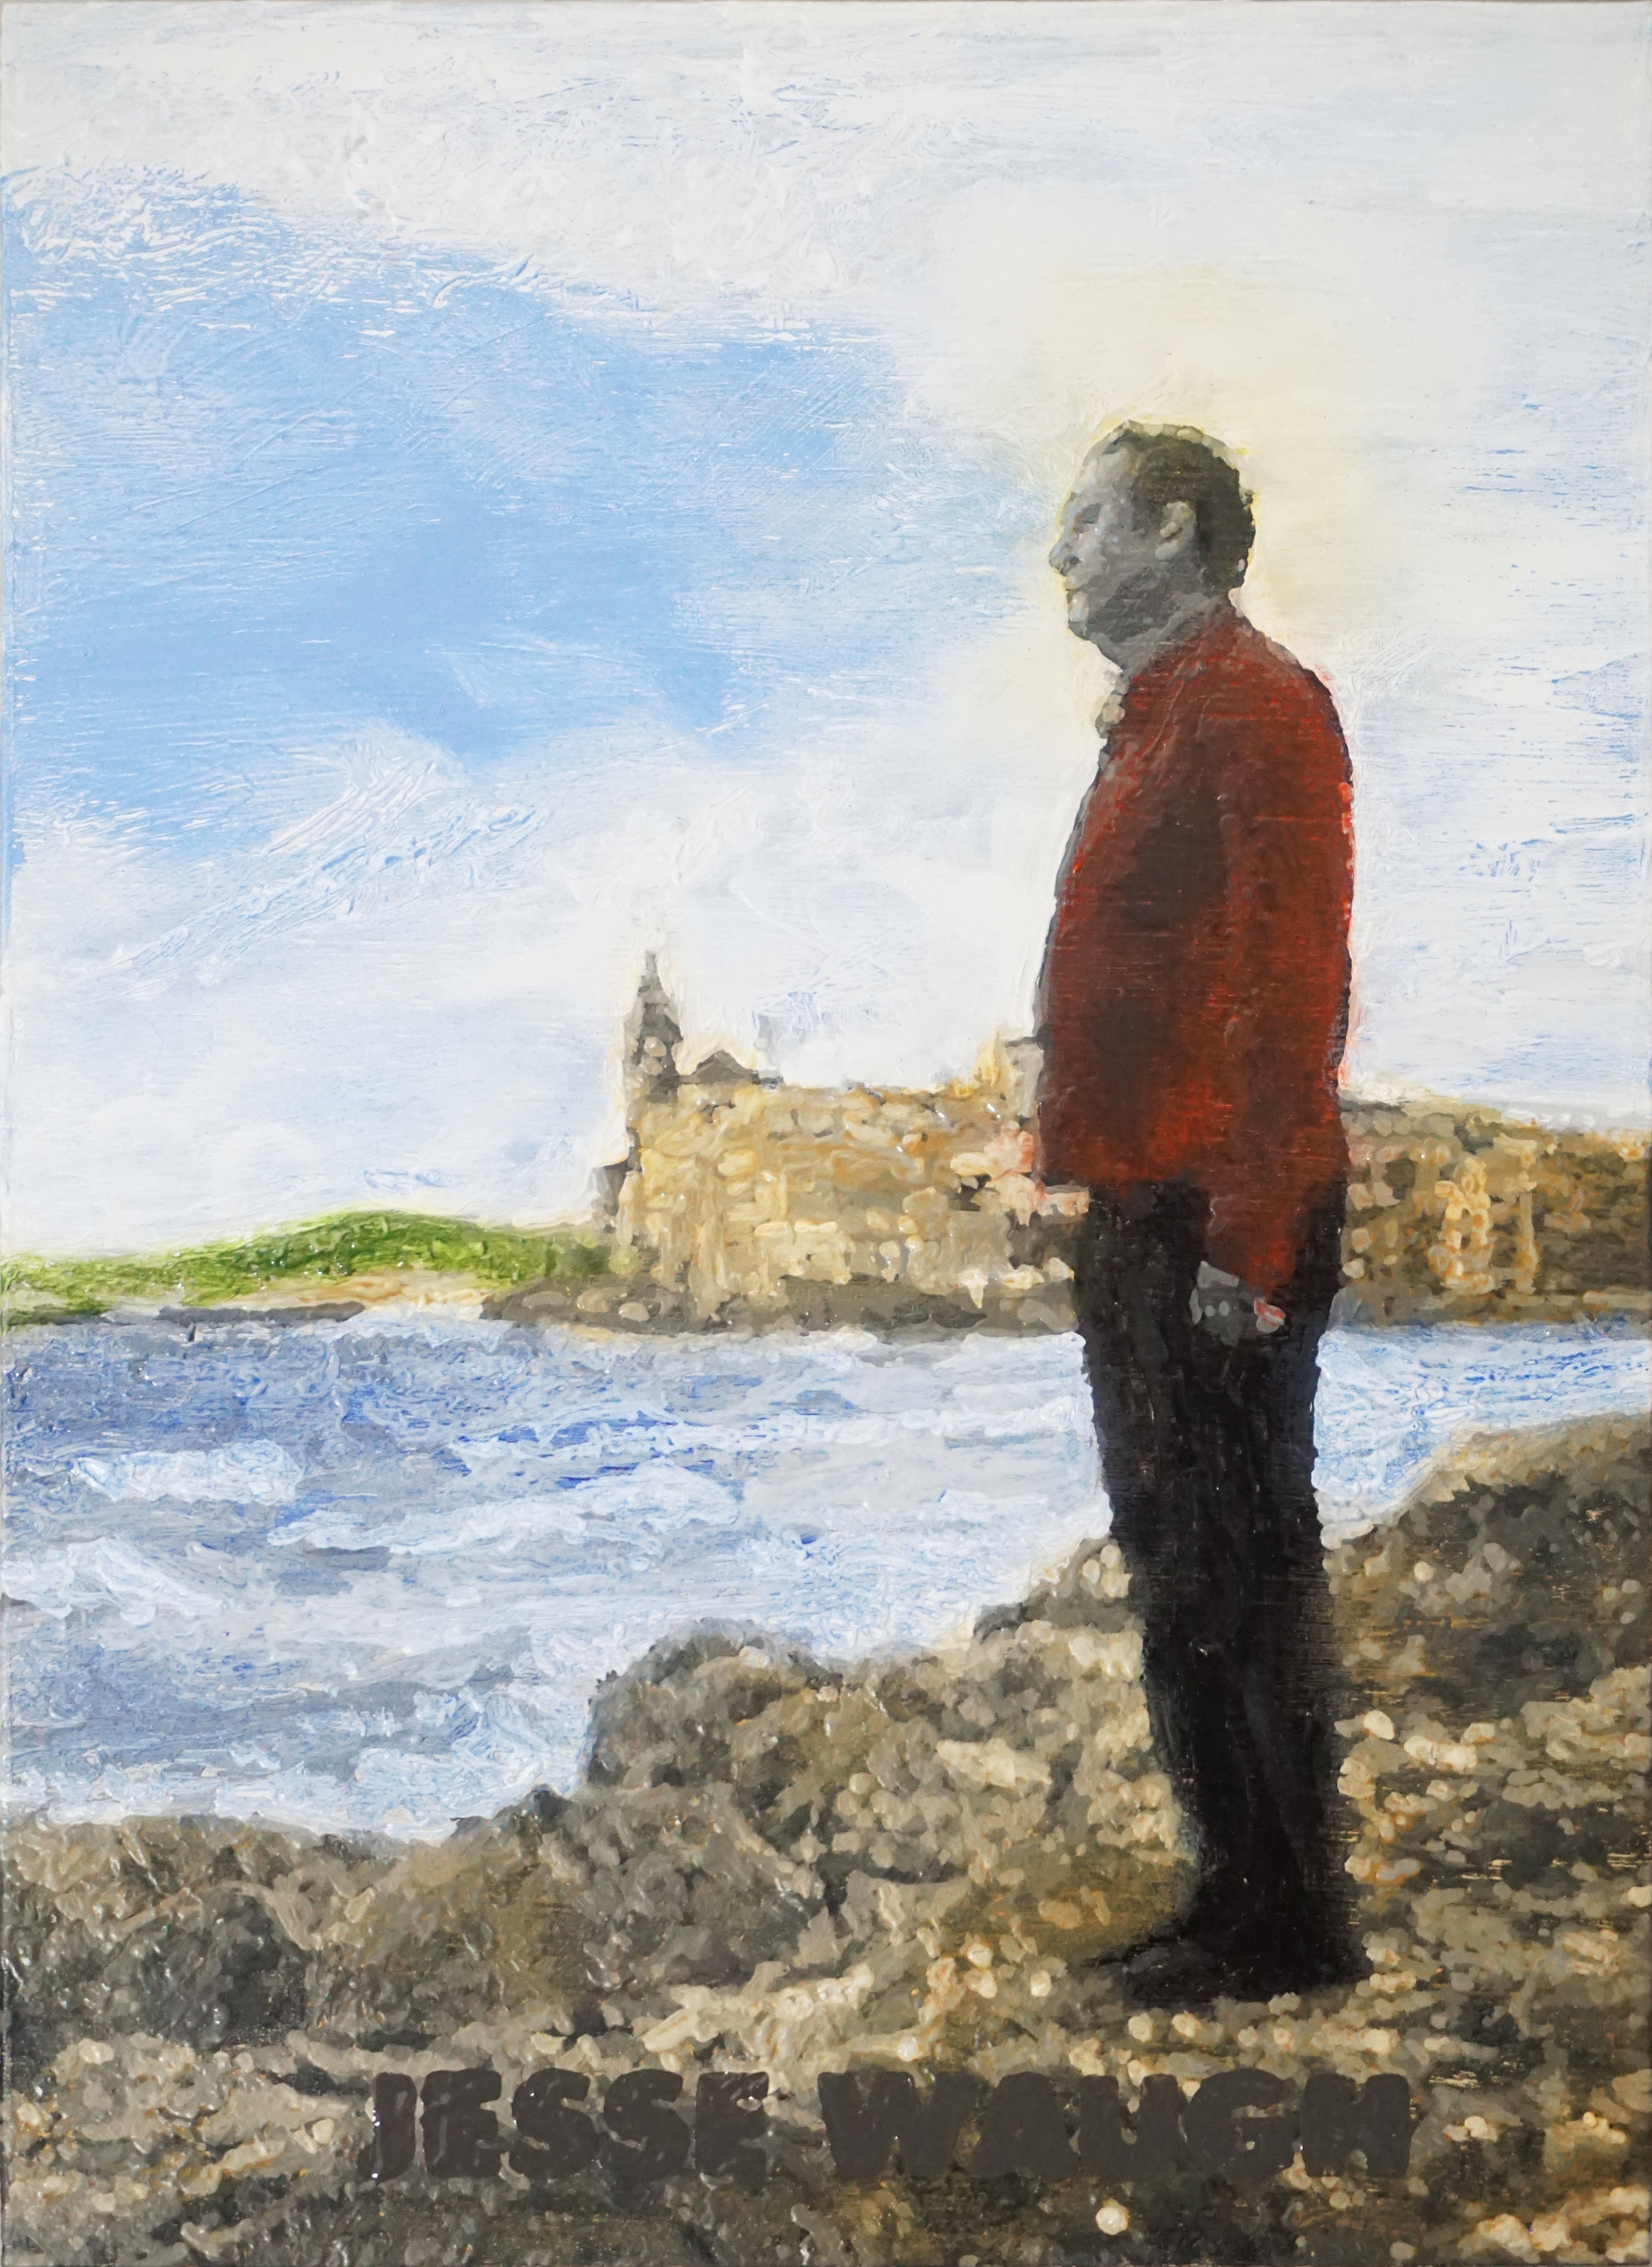 JESSE WAUGH   KEITH WILLIAMSON AT SITGES   2017 OIL ON CANVAS 22 X 16 X 4 CM